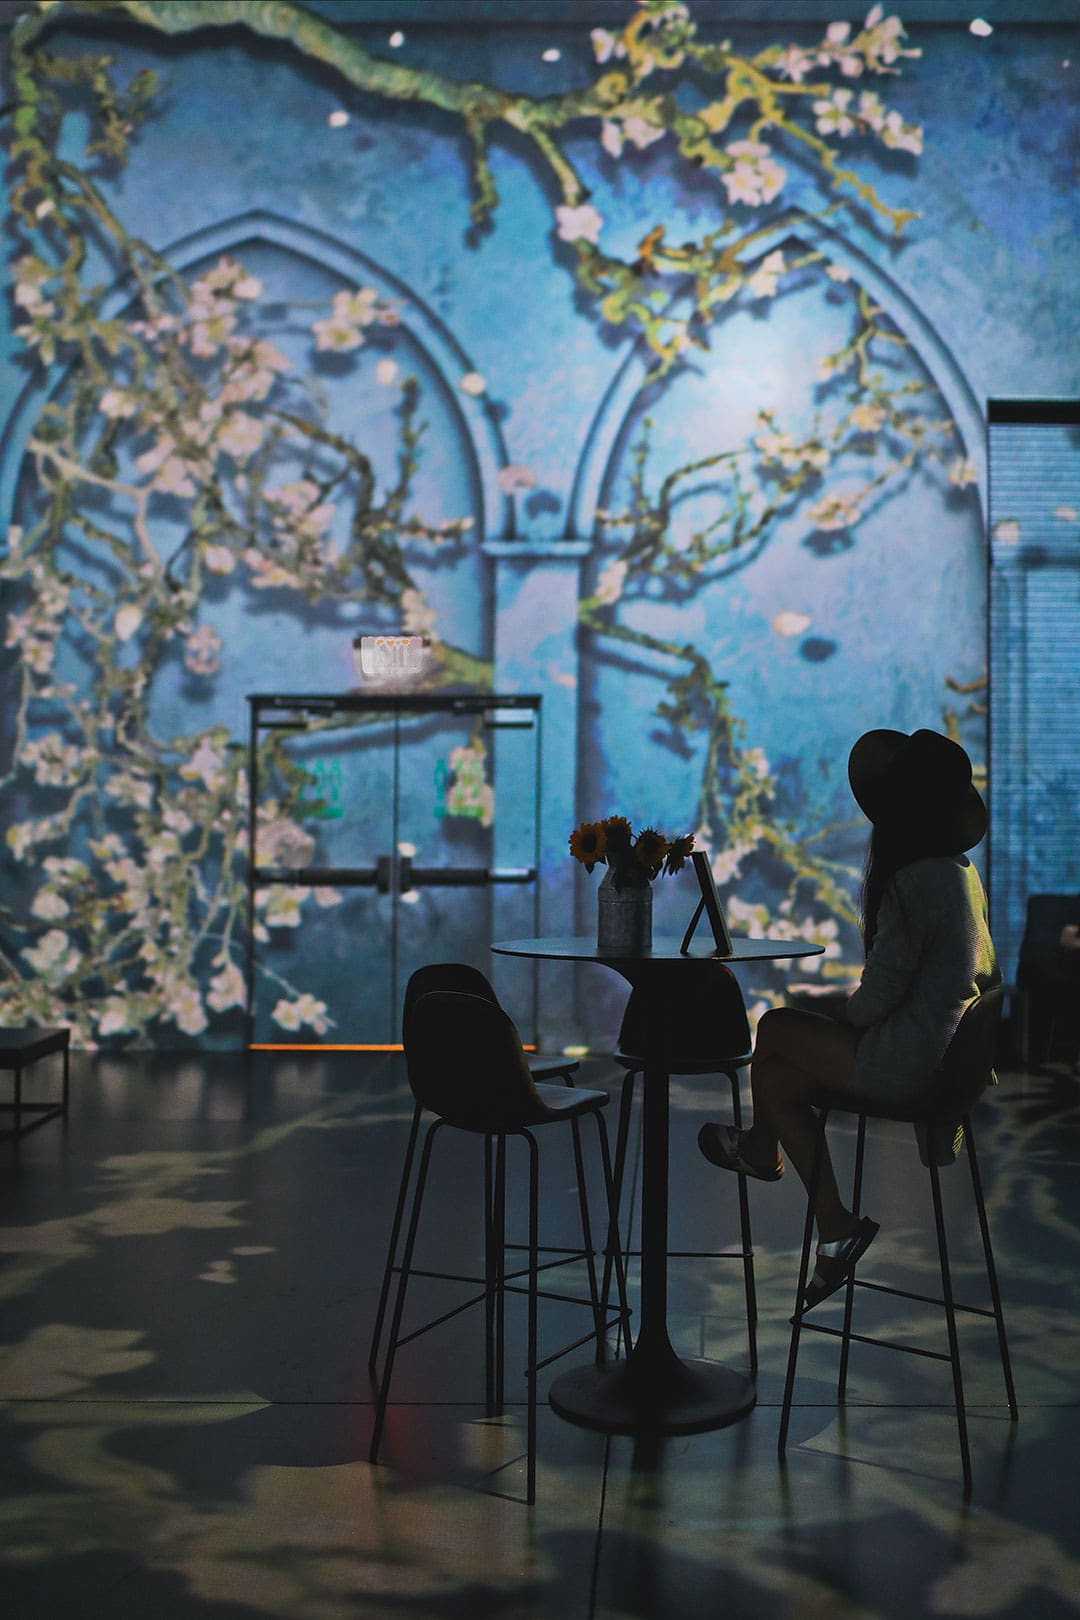 Van Gogh Immersive Experience – Everything You Need to Know